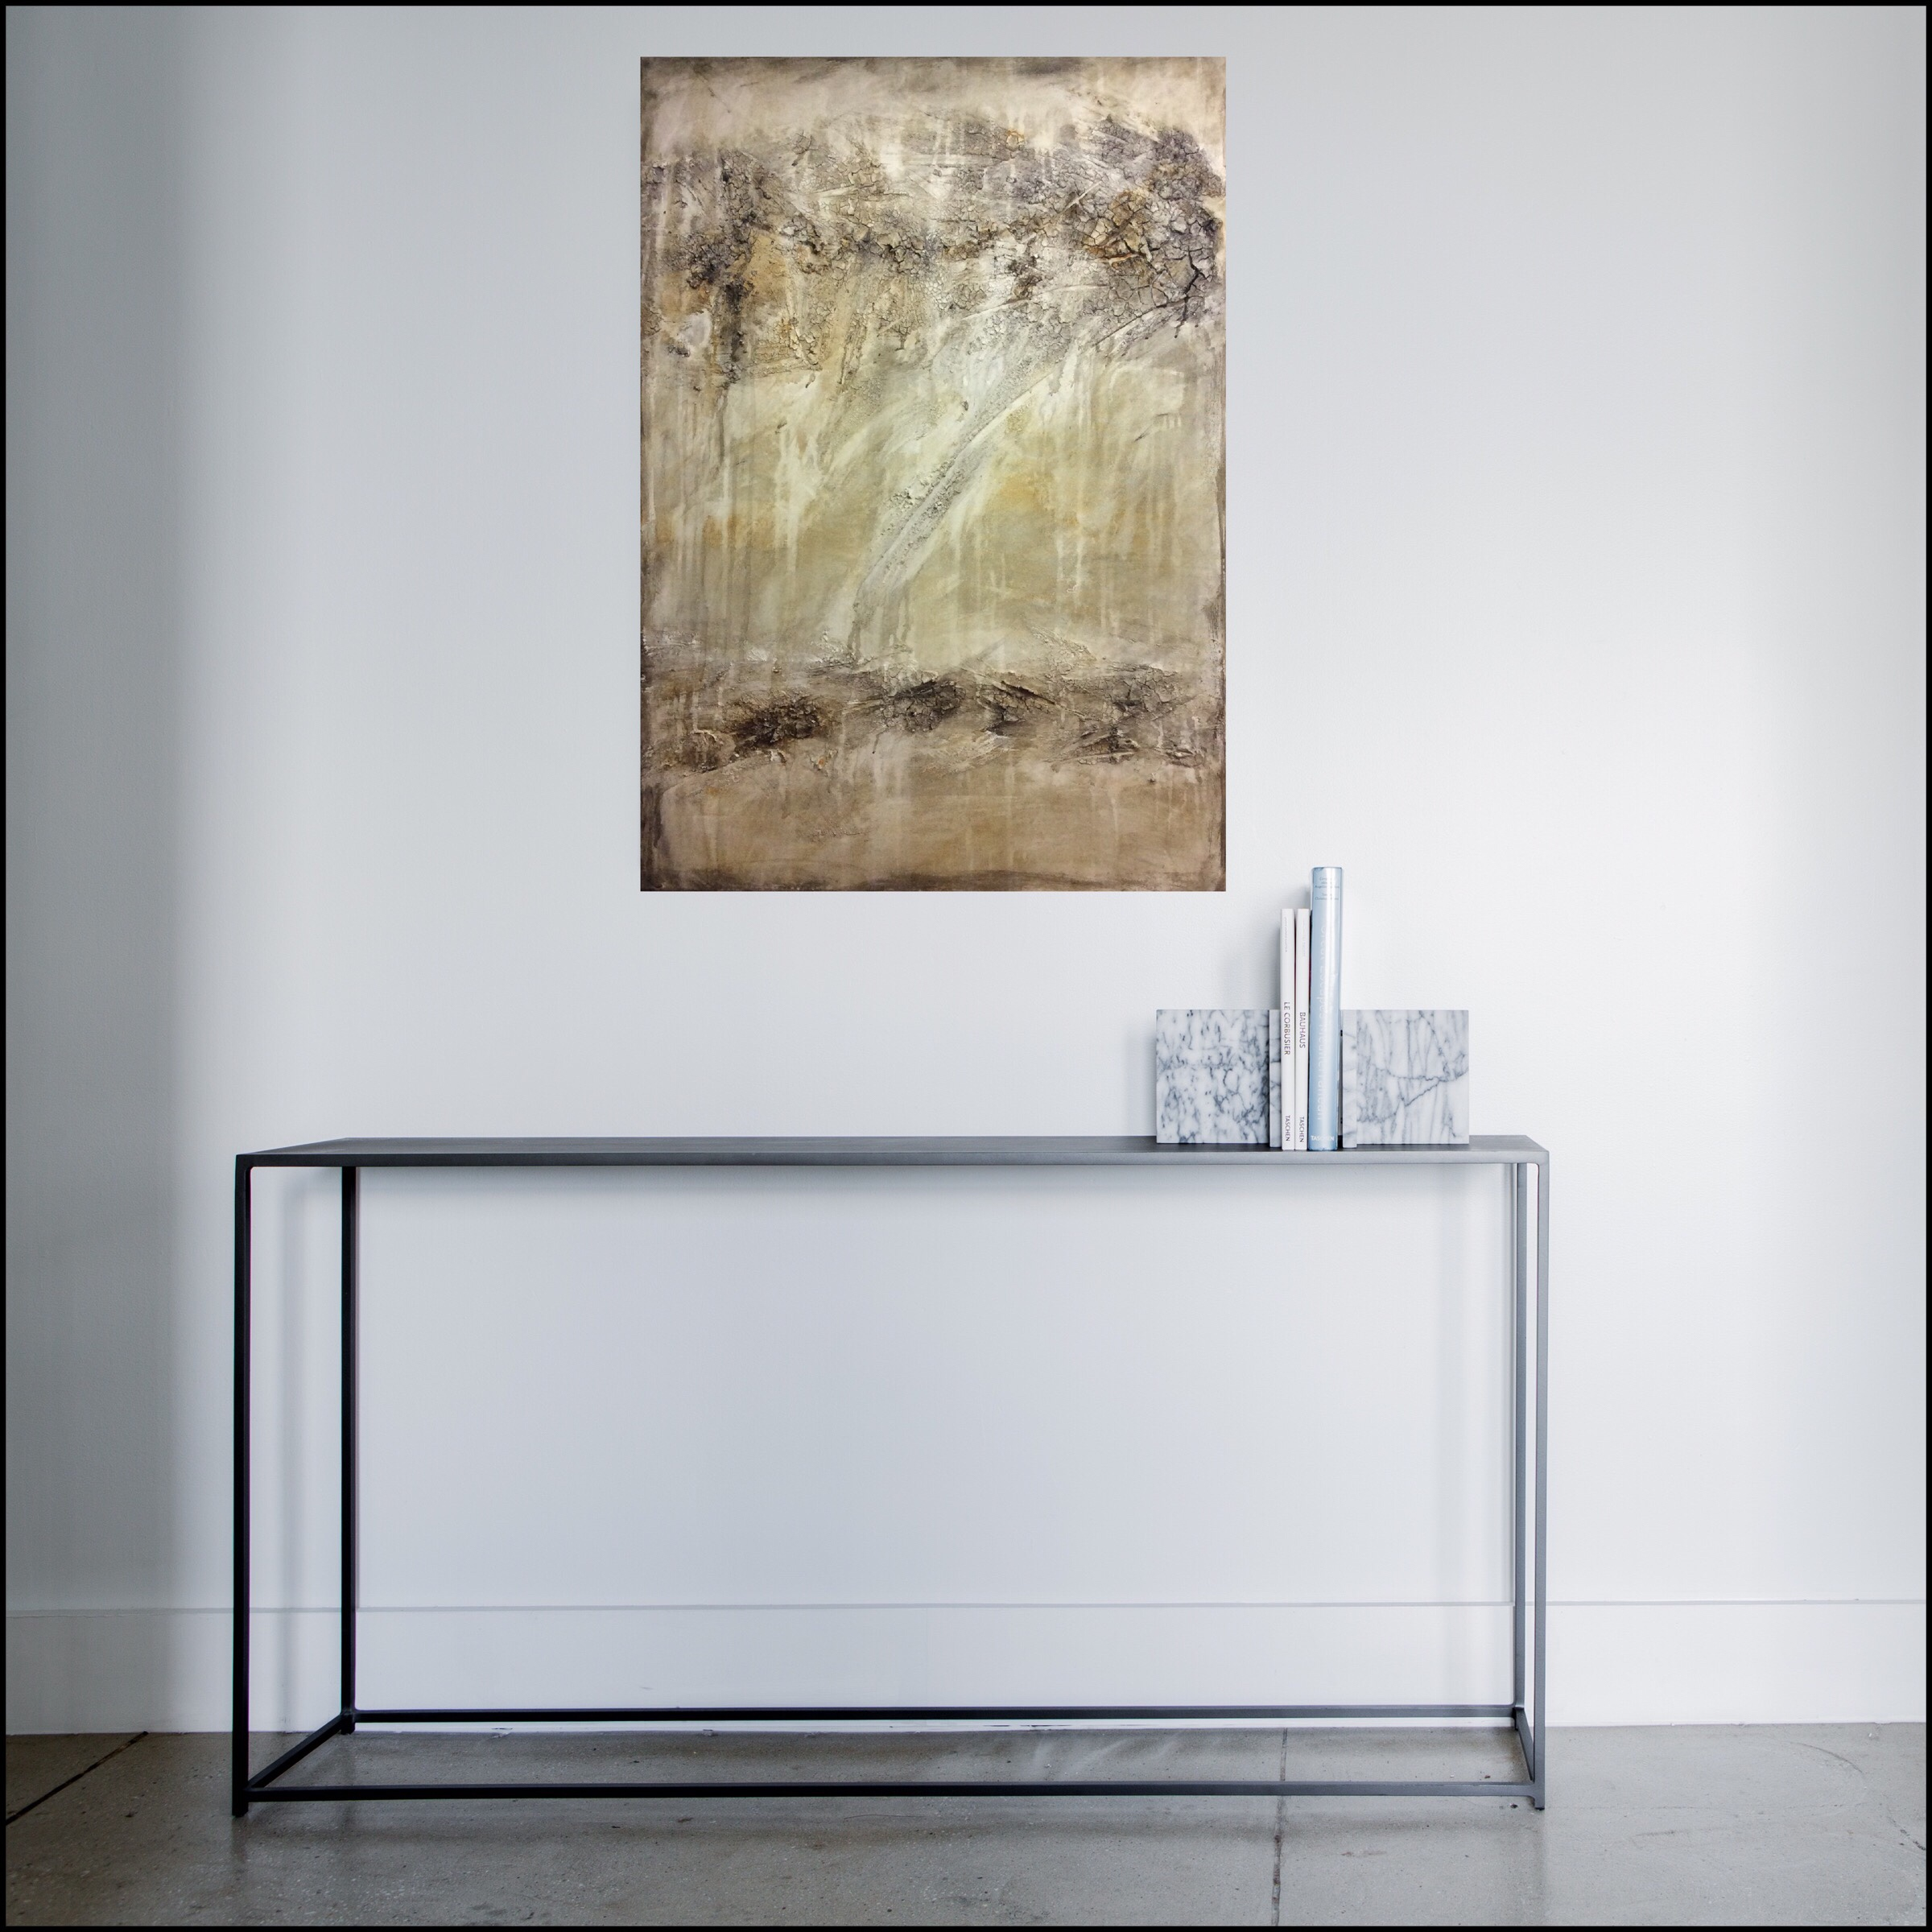 Interior design: Textured abstract painting in light tones